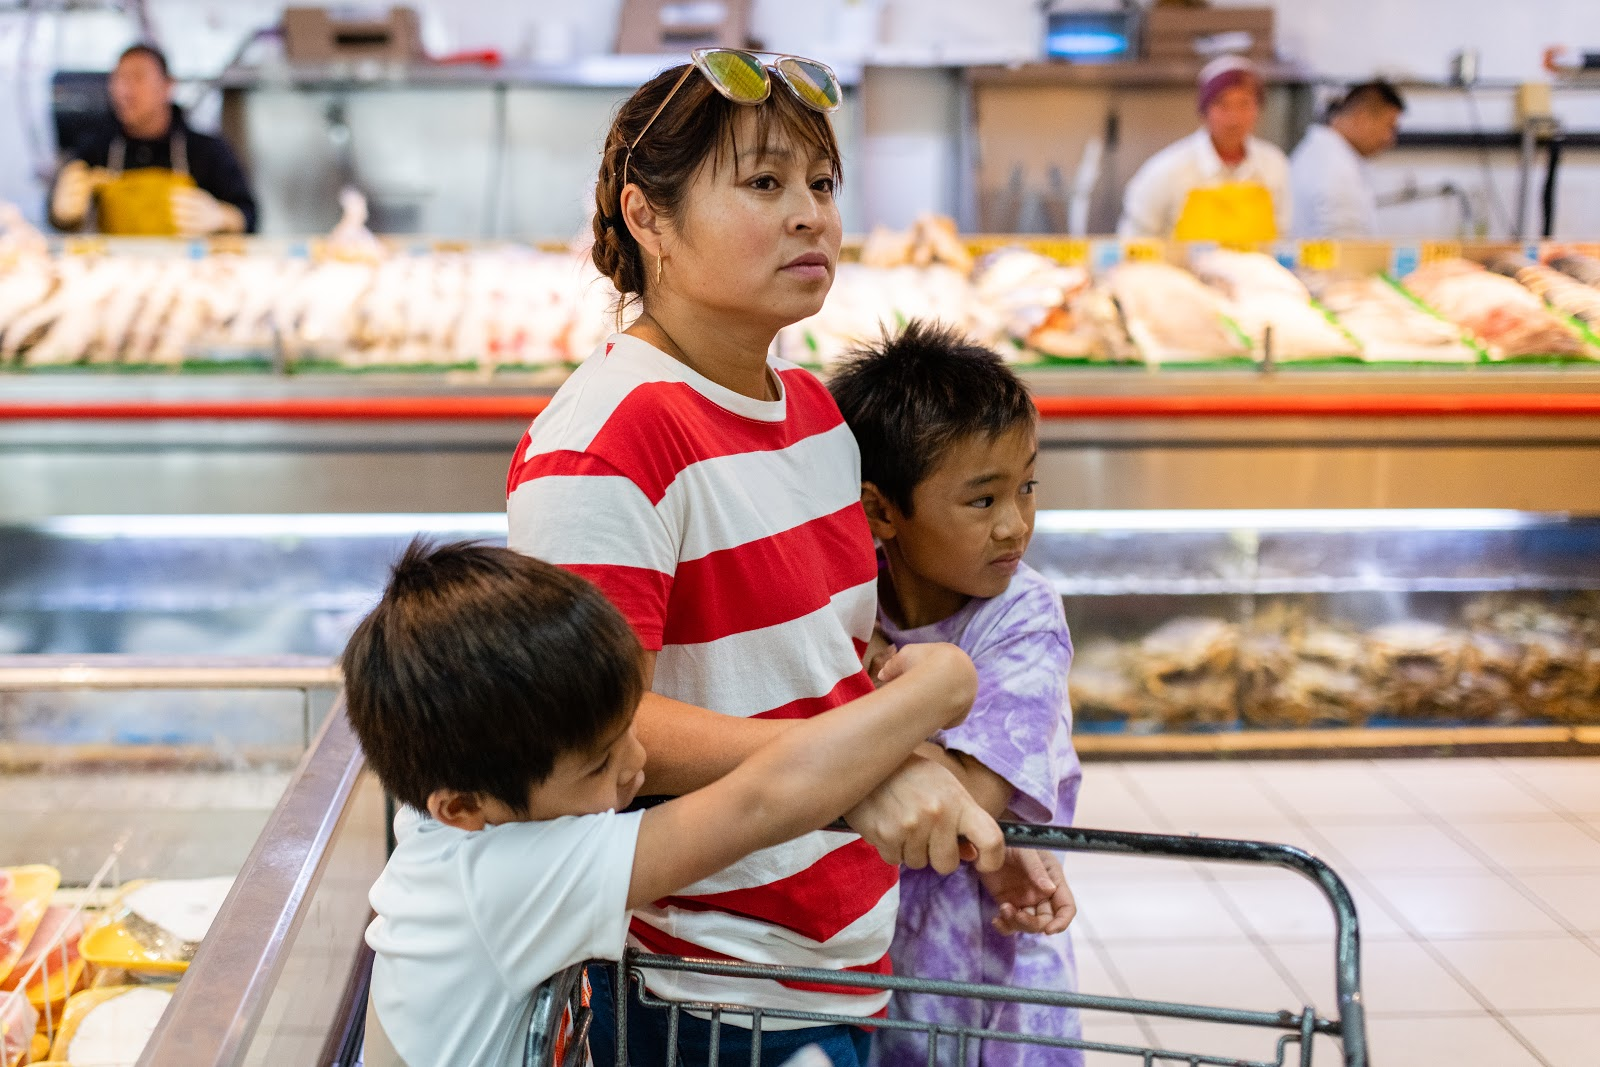 Mother and children in grocery store